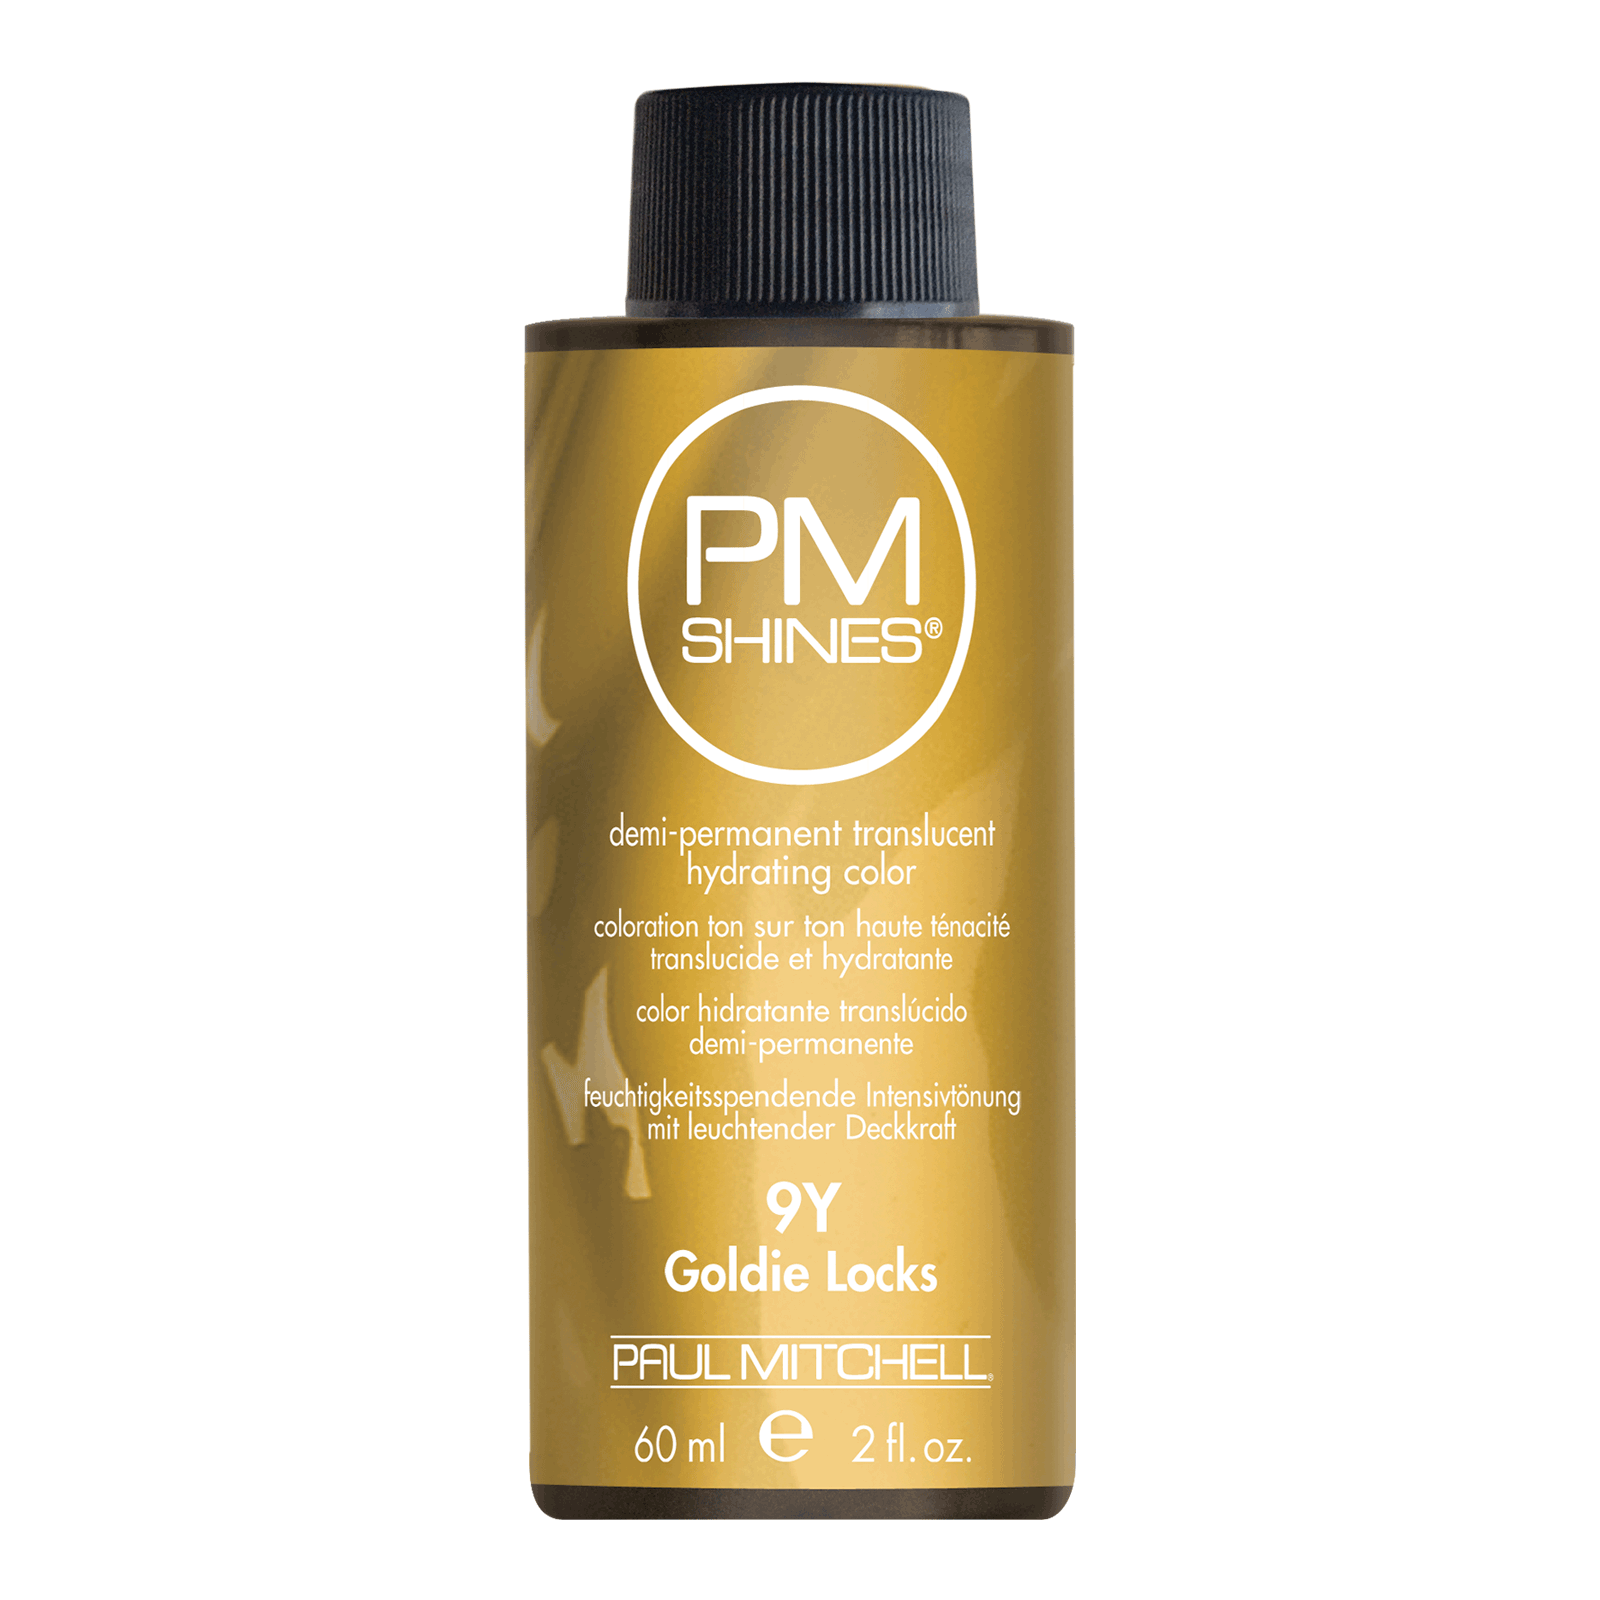 Pm shines demi permanent hair color john paul mitchell systems